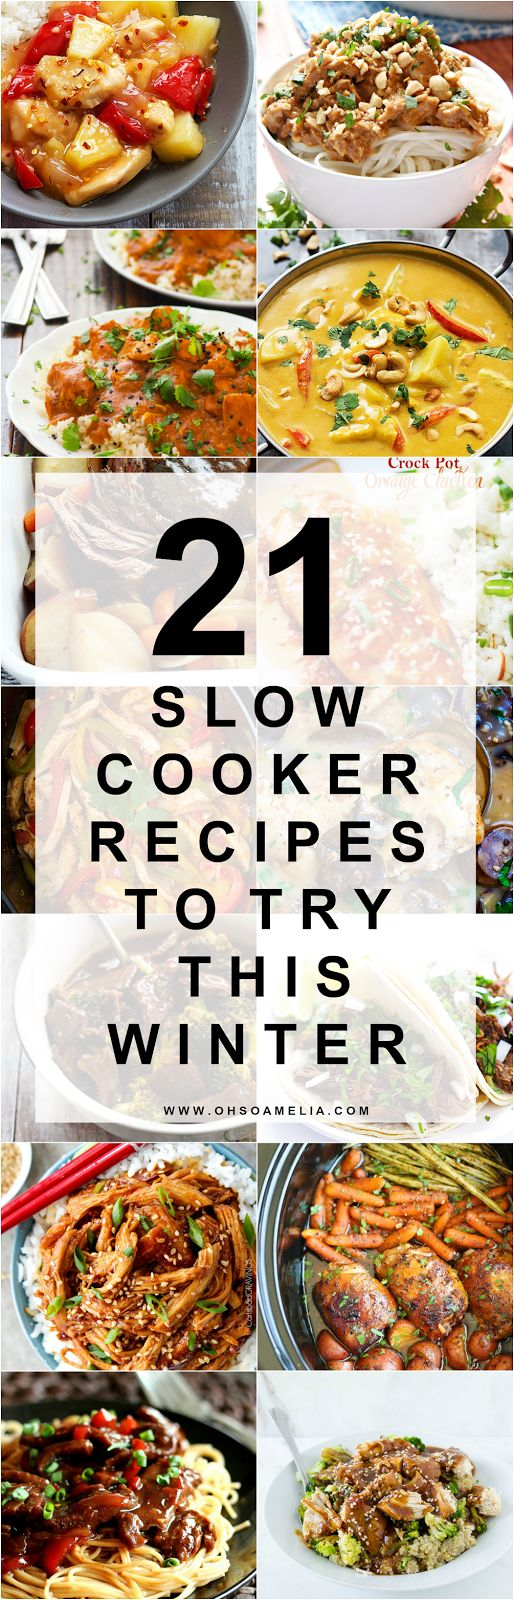 21 slow cooker recipes to try this winter